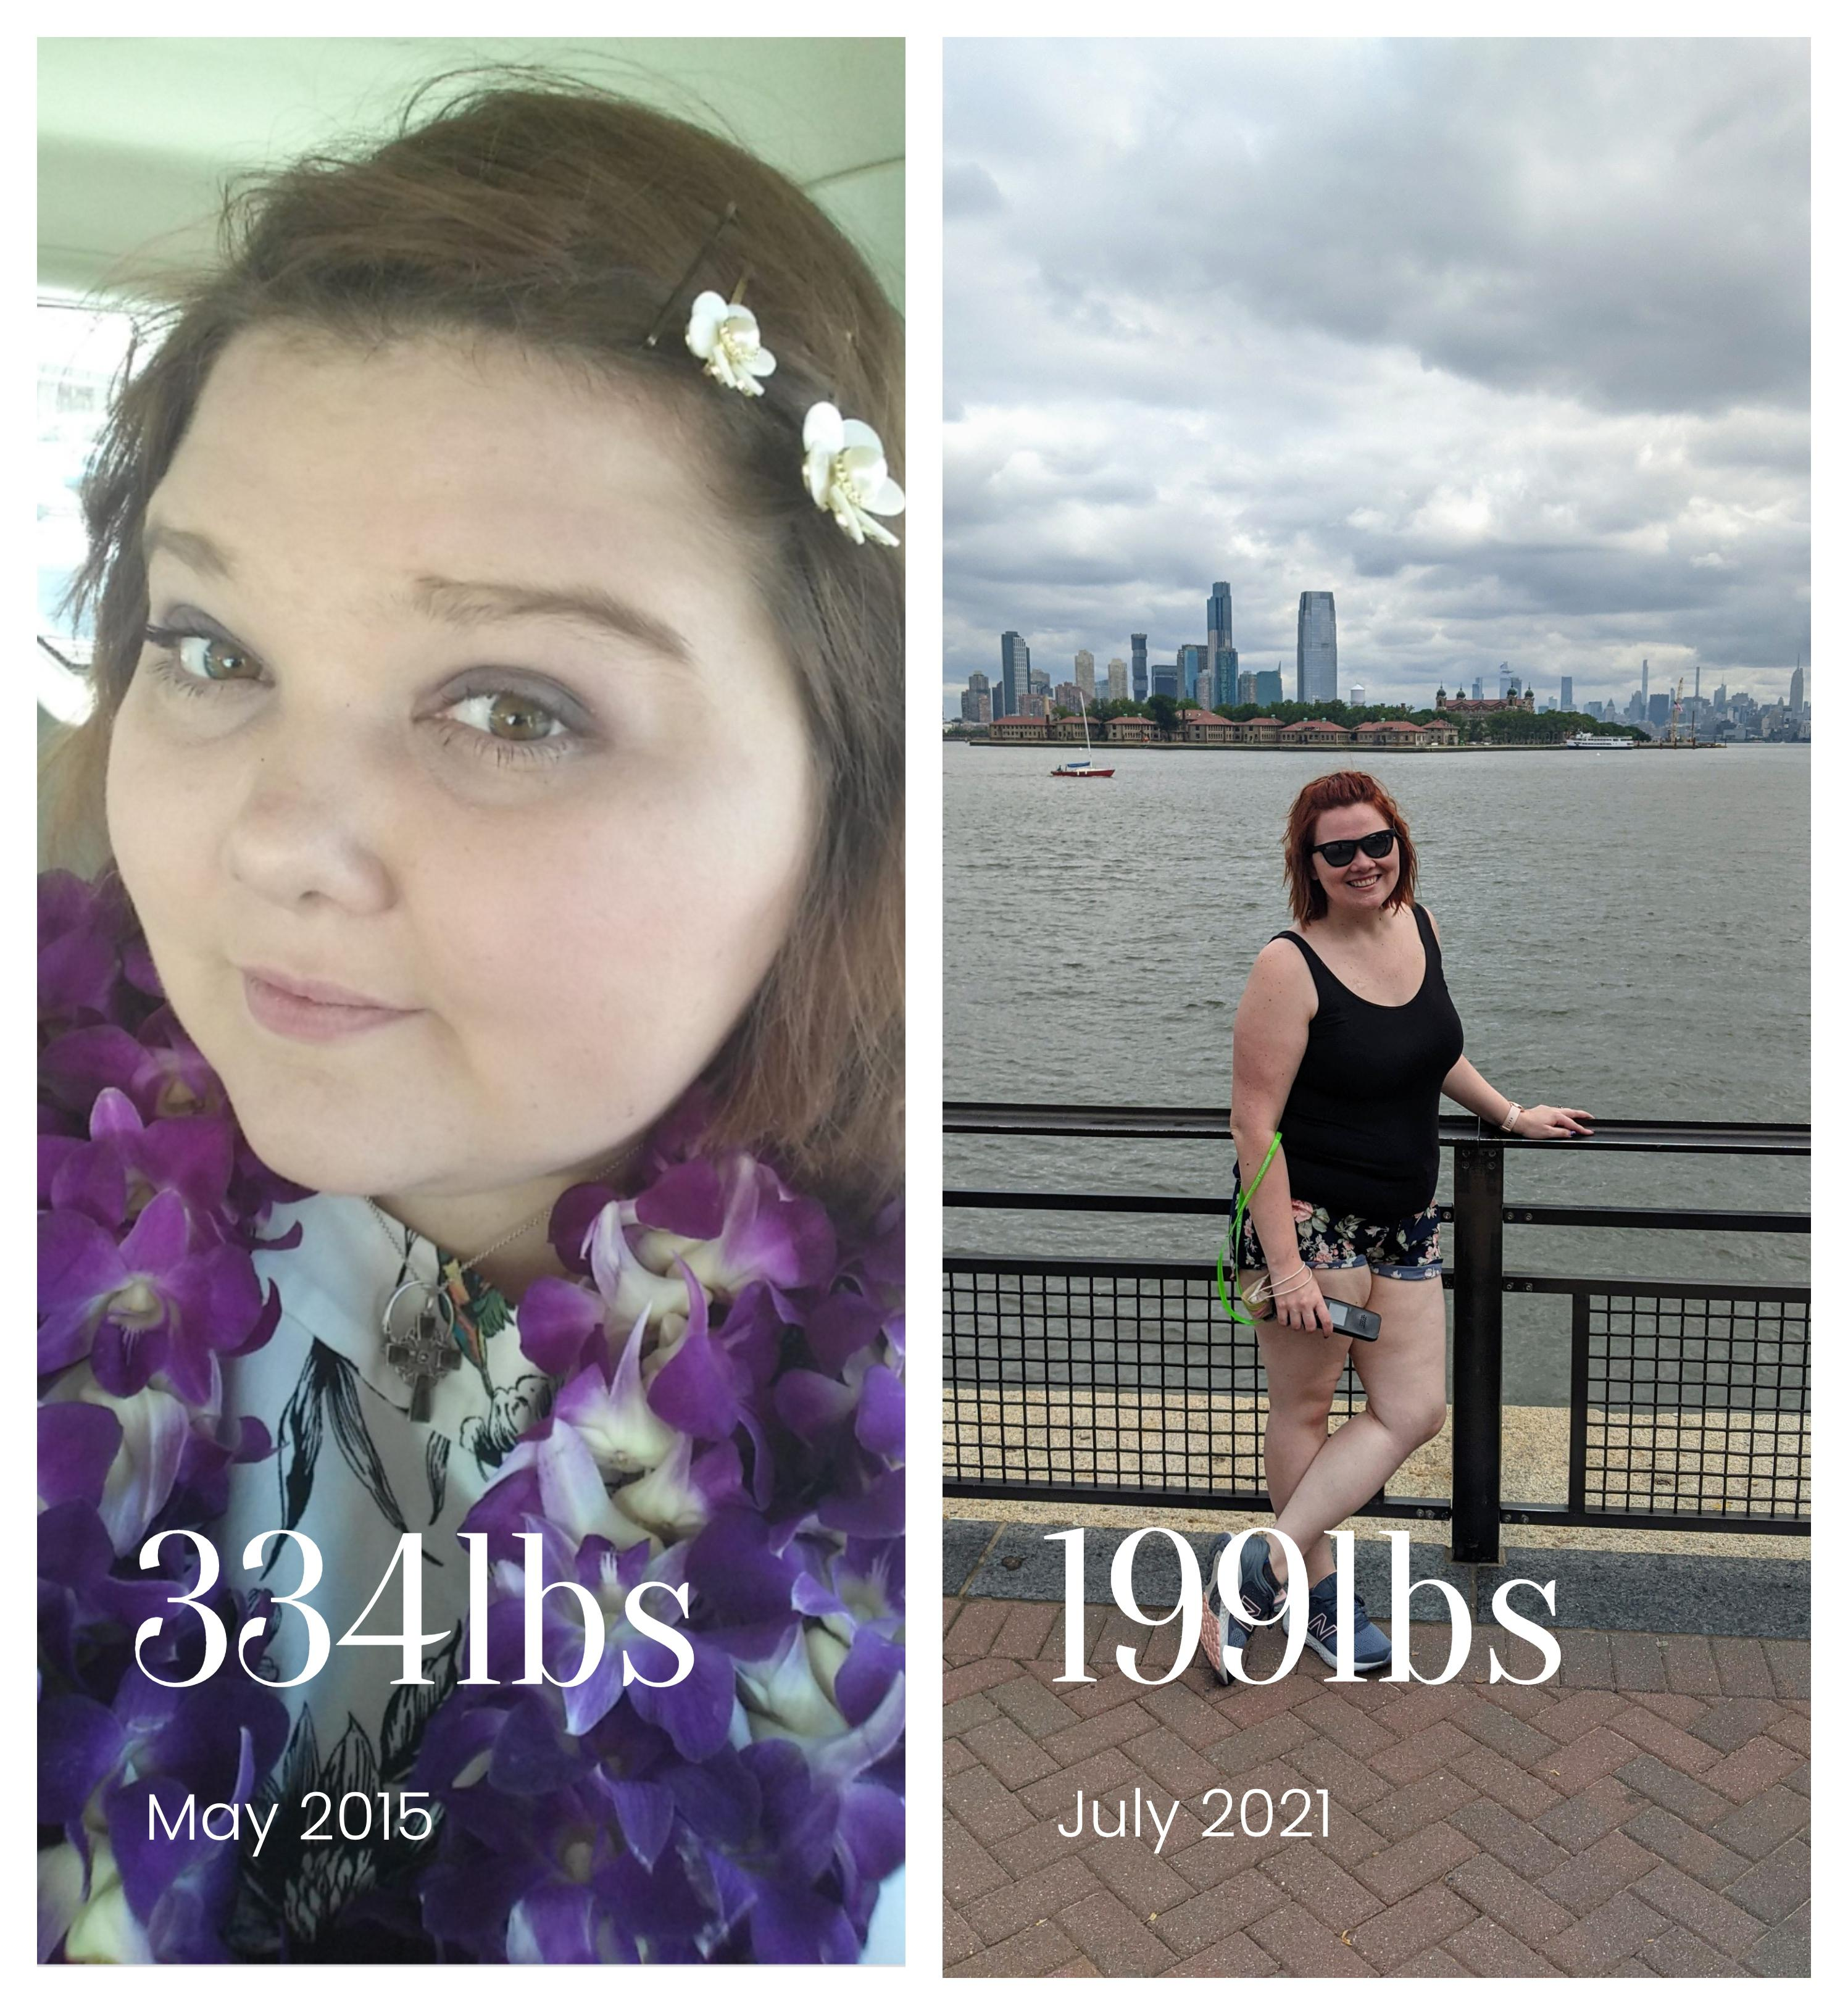 5 foot 7 Female 135 lbs Weight Loss Before and After 334 lbs to 199 lbs